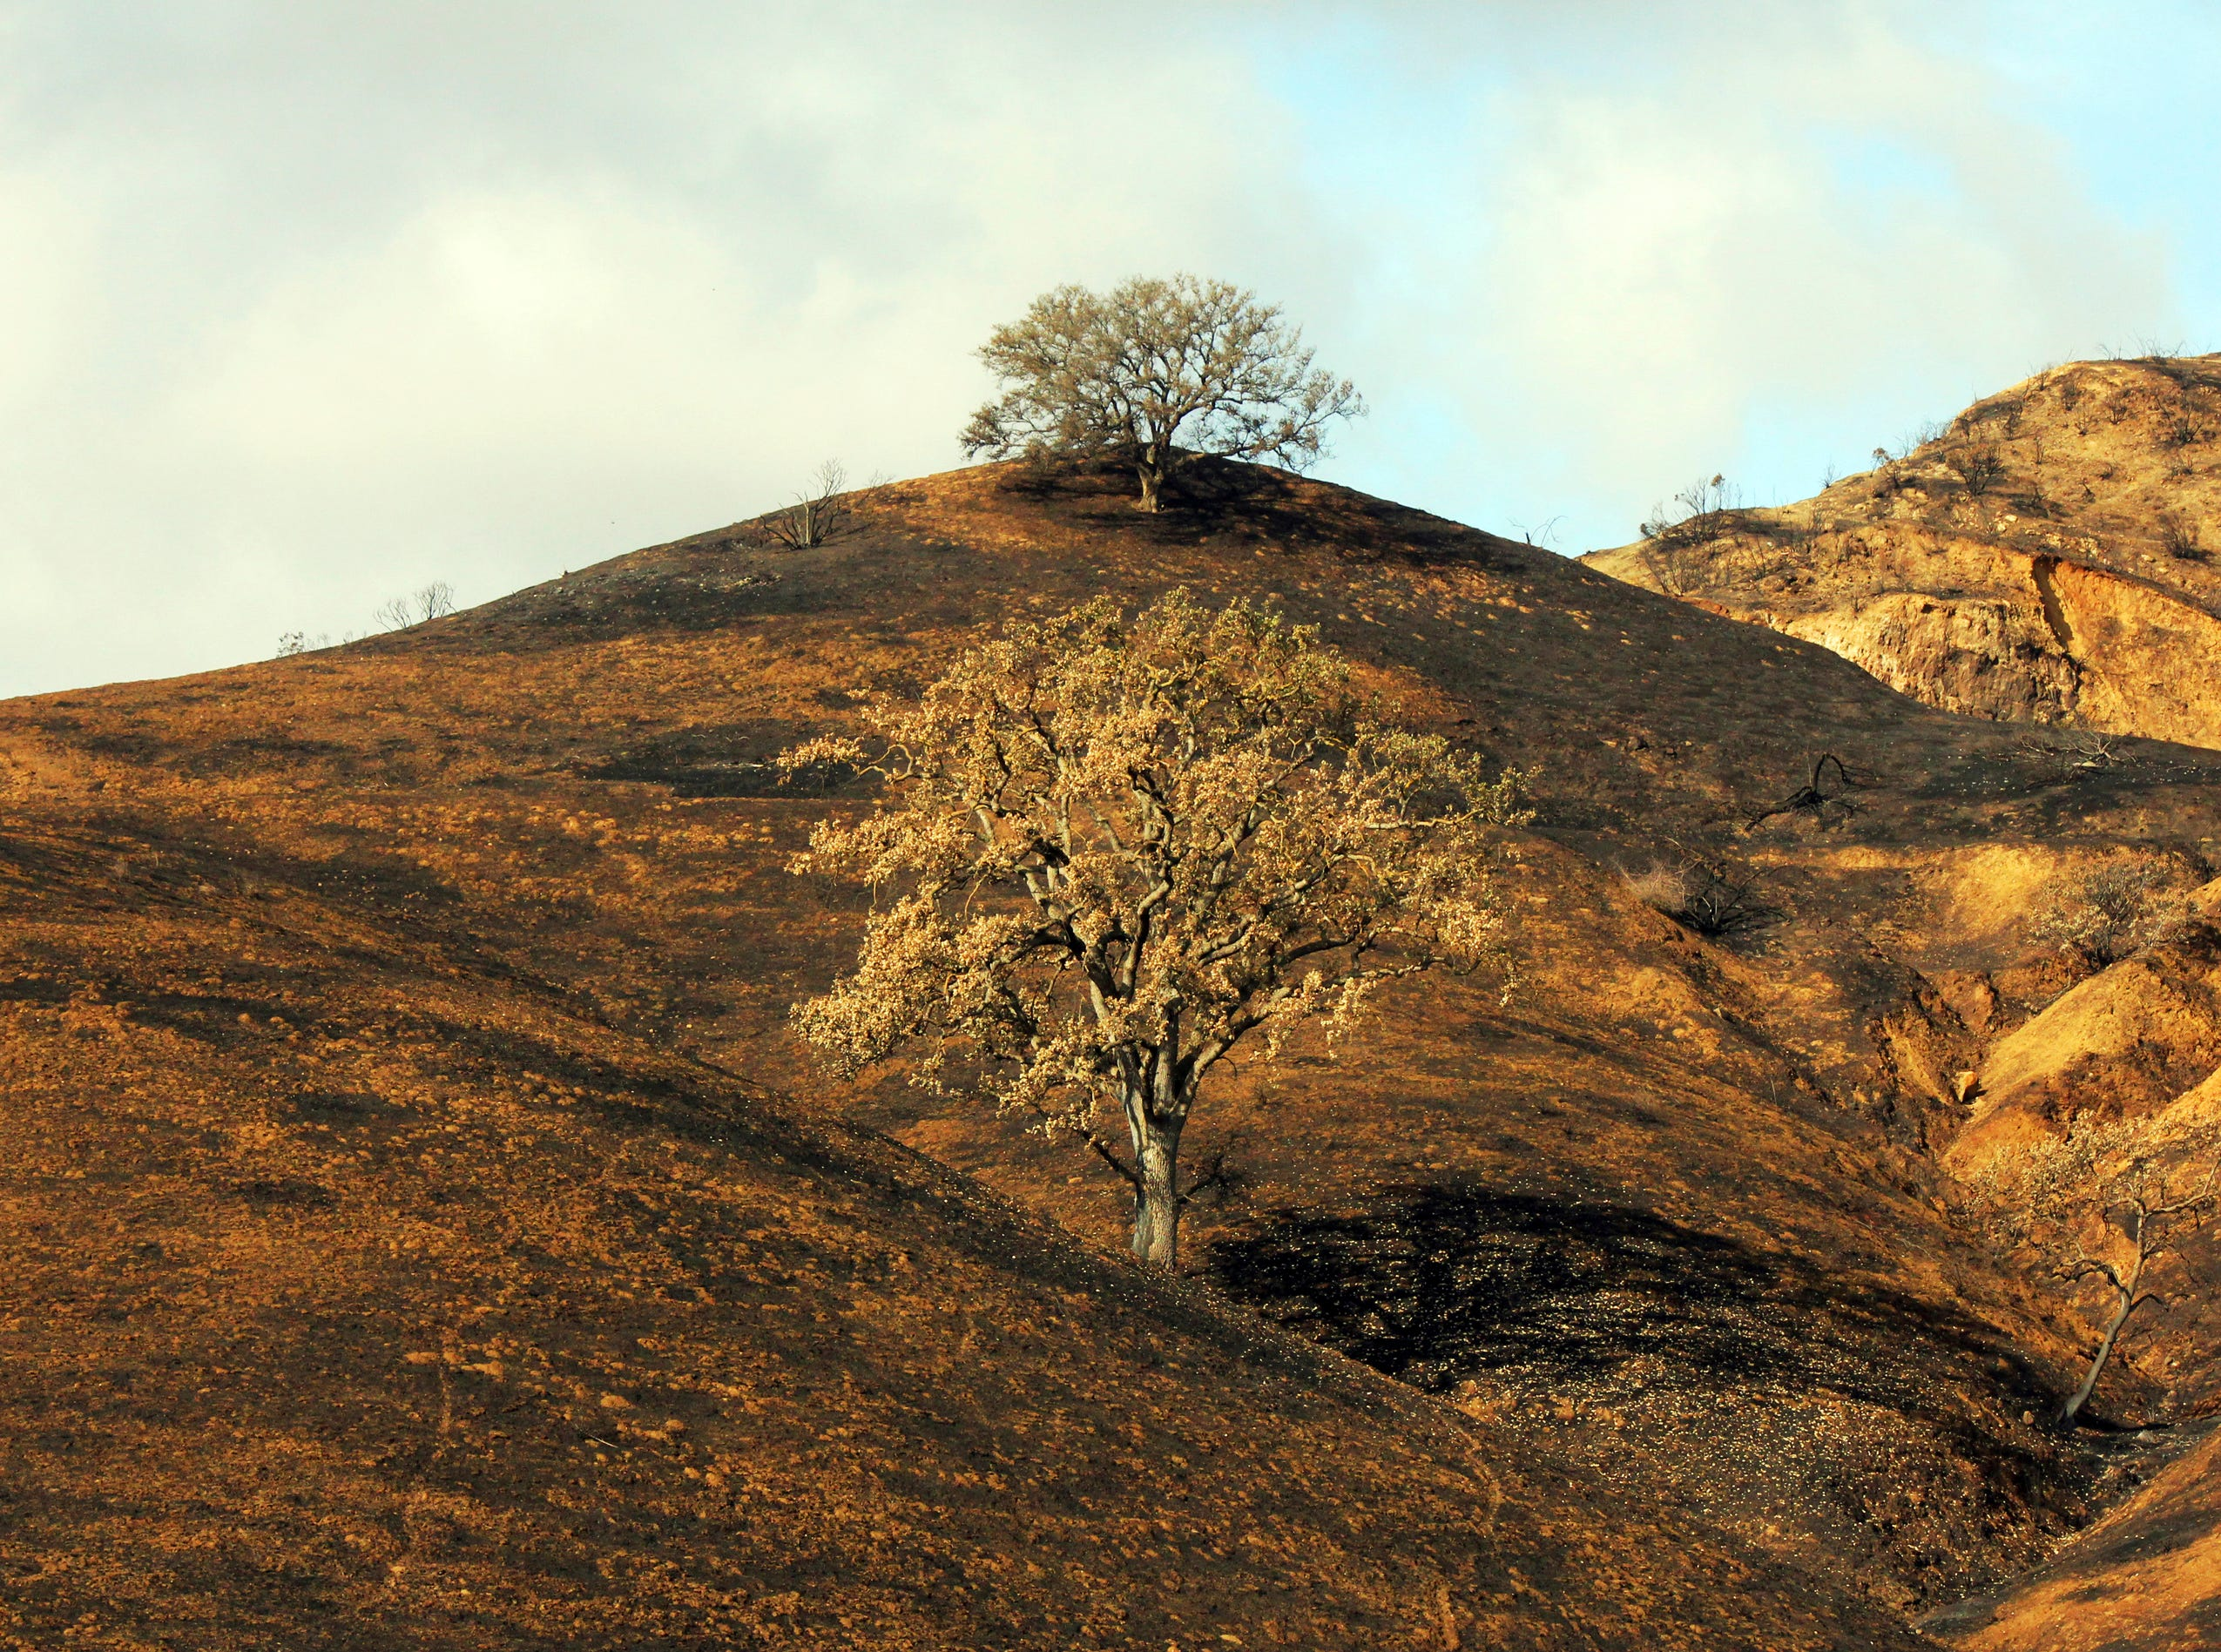 In this Thursday, Nov. 22, 2018, photo, two oak trees stand on a rain-soaked, burned-over hillside following the Woolsey Fire in Agoura Hills, Calif. In Southern California, more residents were allowed to return to areas that were evacuated due to the 151-square-mile Woolsey Fire as crews worked to repair power, telephone and gas utilities. A storm on Thanksgiving Day passed without causing significant mudslides, but forecasters said more rain was possible next week.